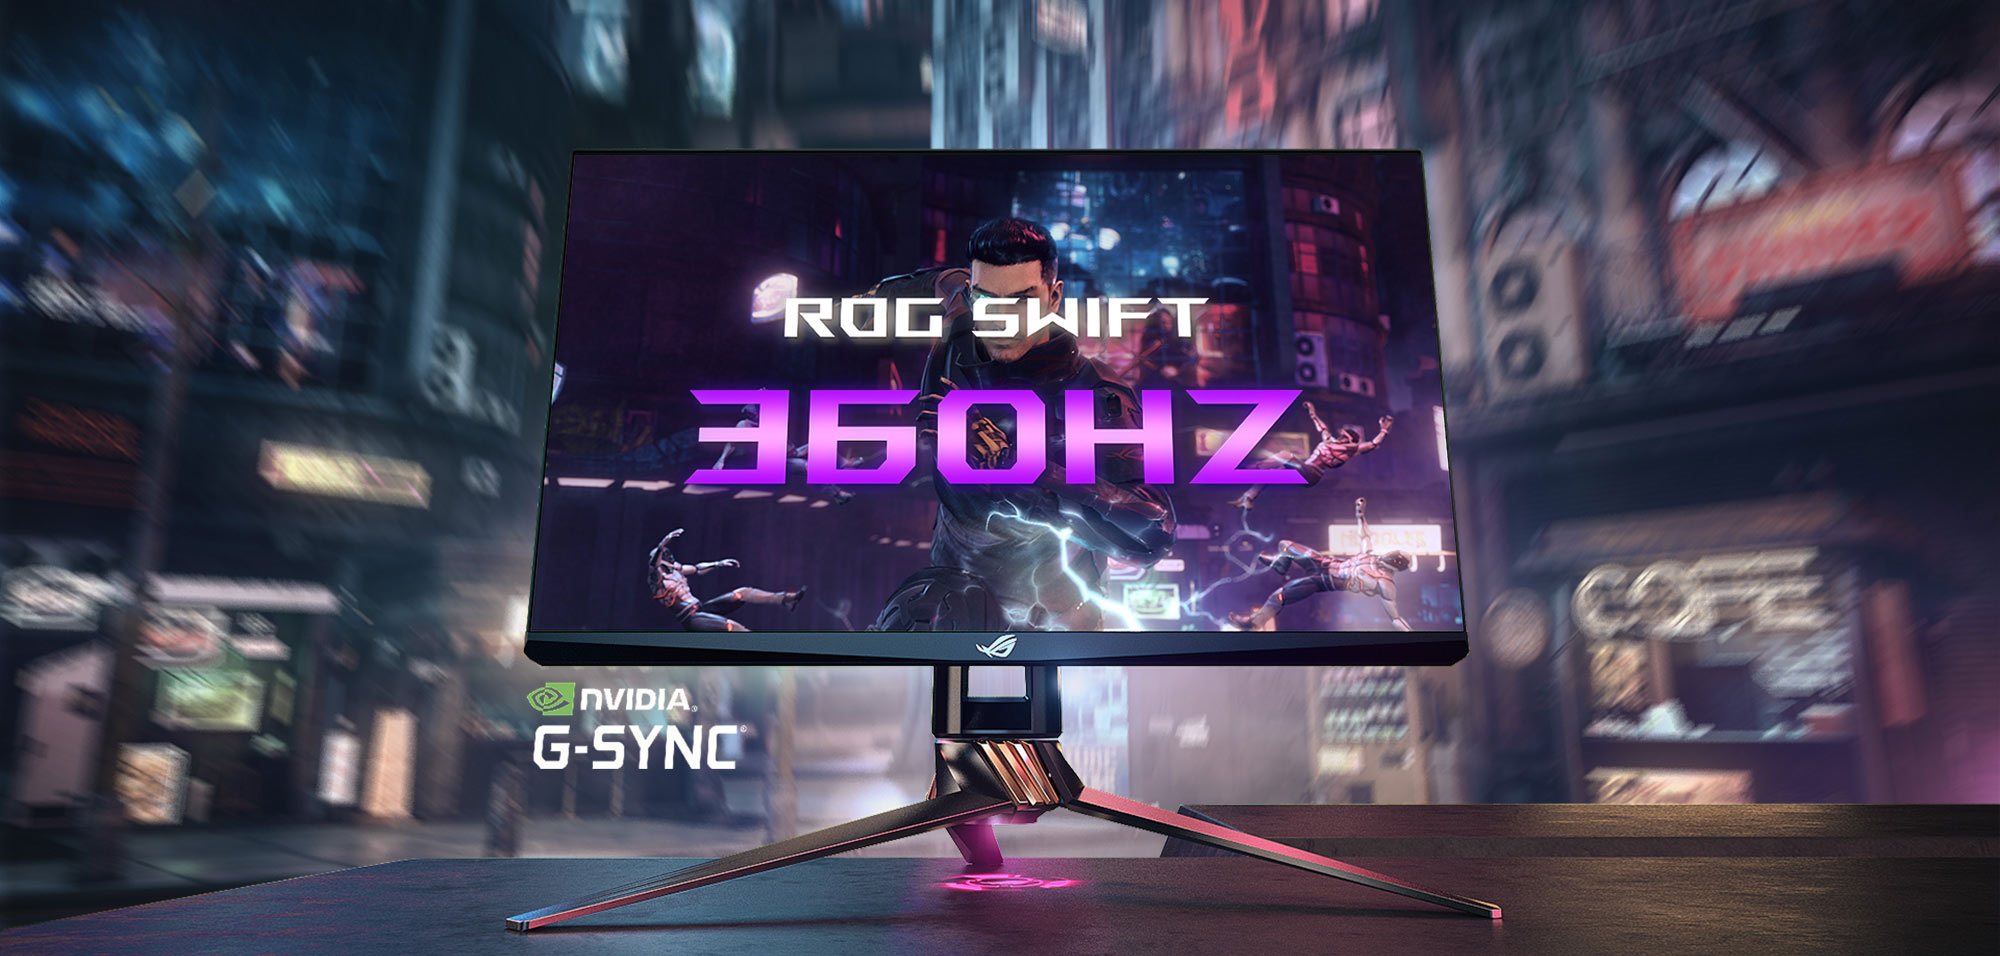 ROG-Swift-360hz-banner